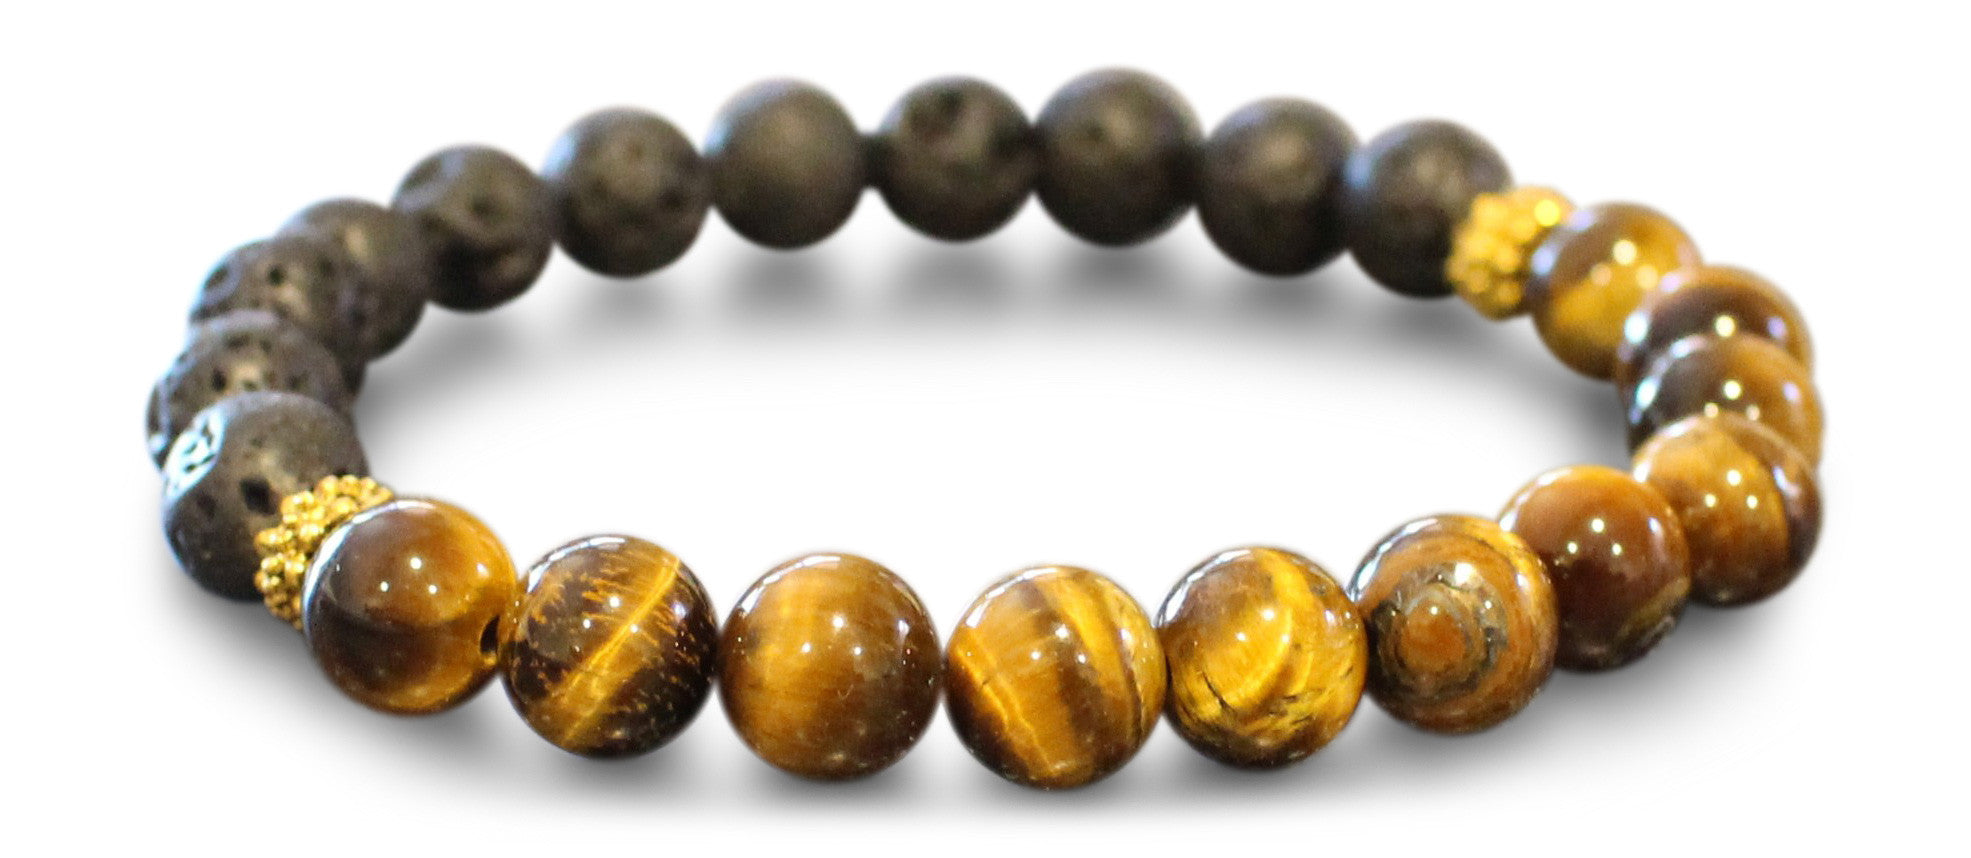 Black Lava Rock and Fashion Tiger Eye Essential Oil [Diffuser] Bracelet